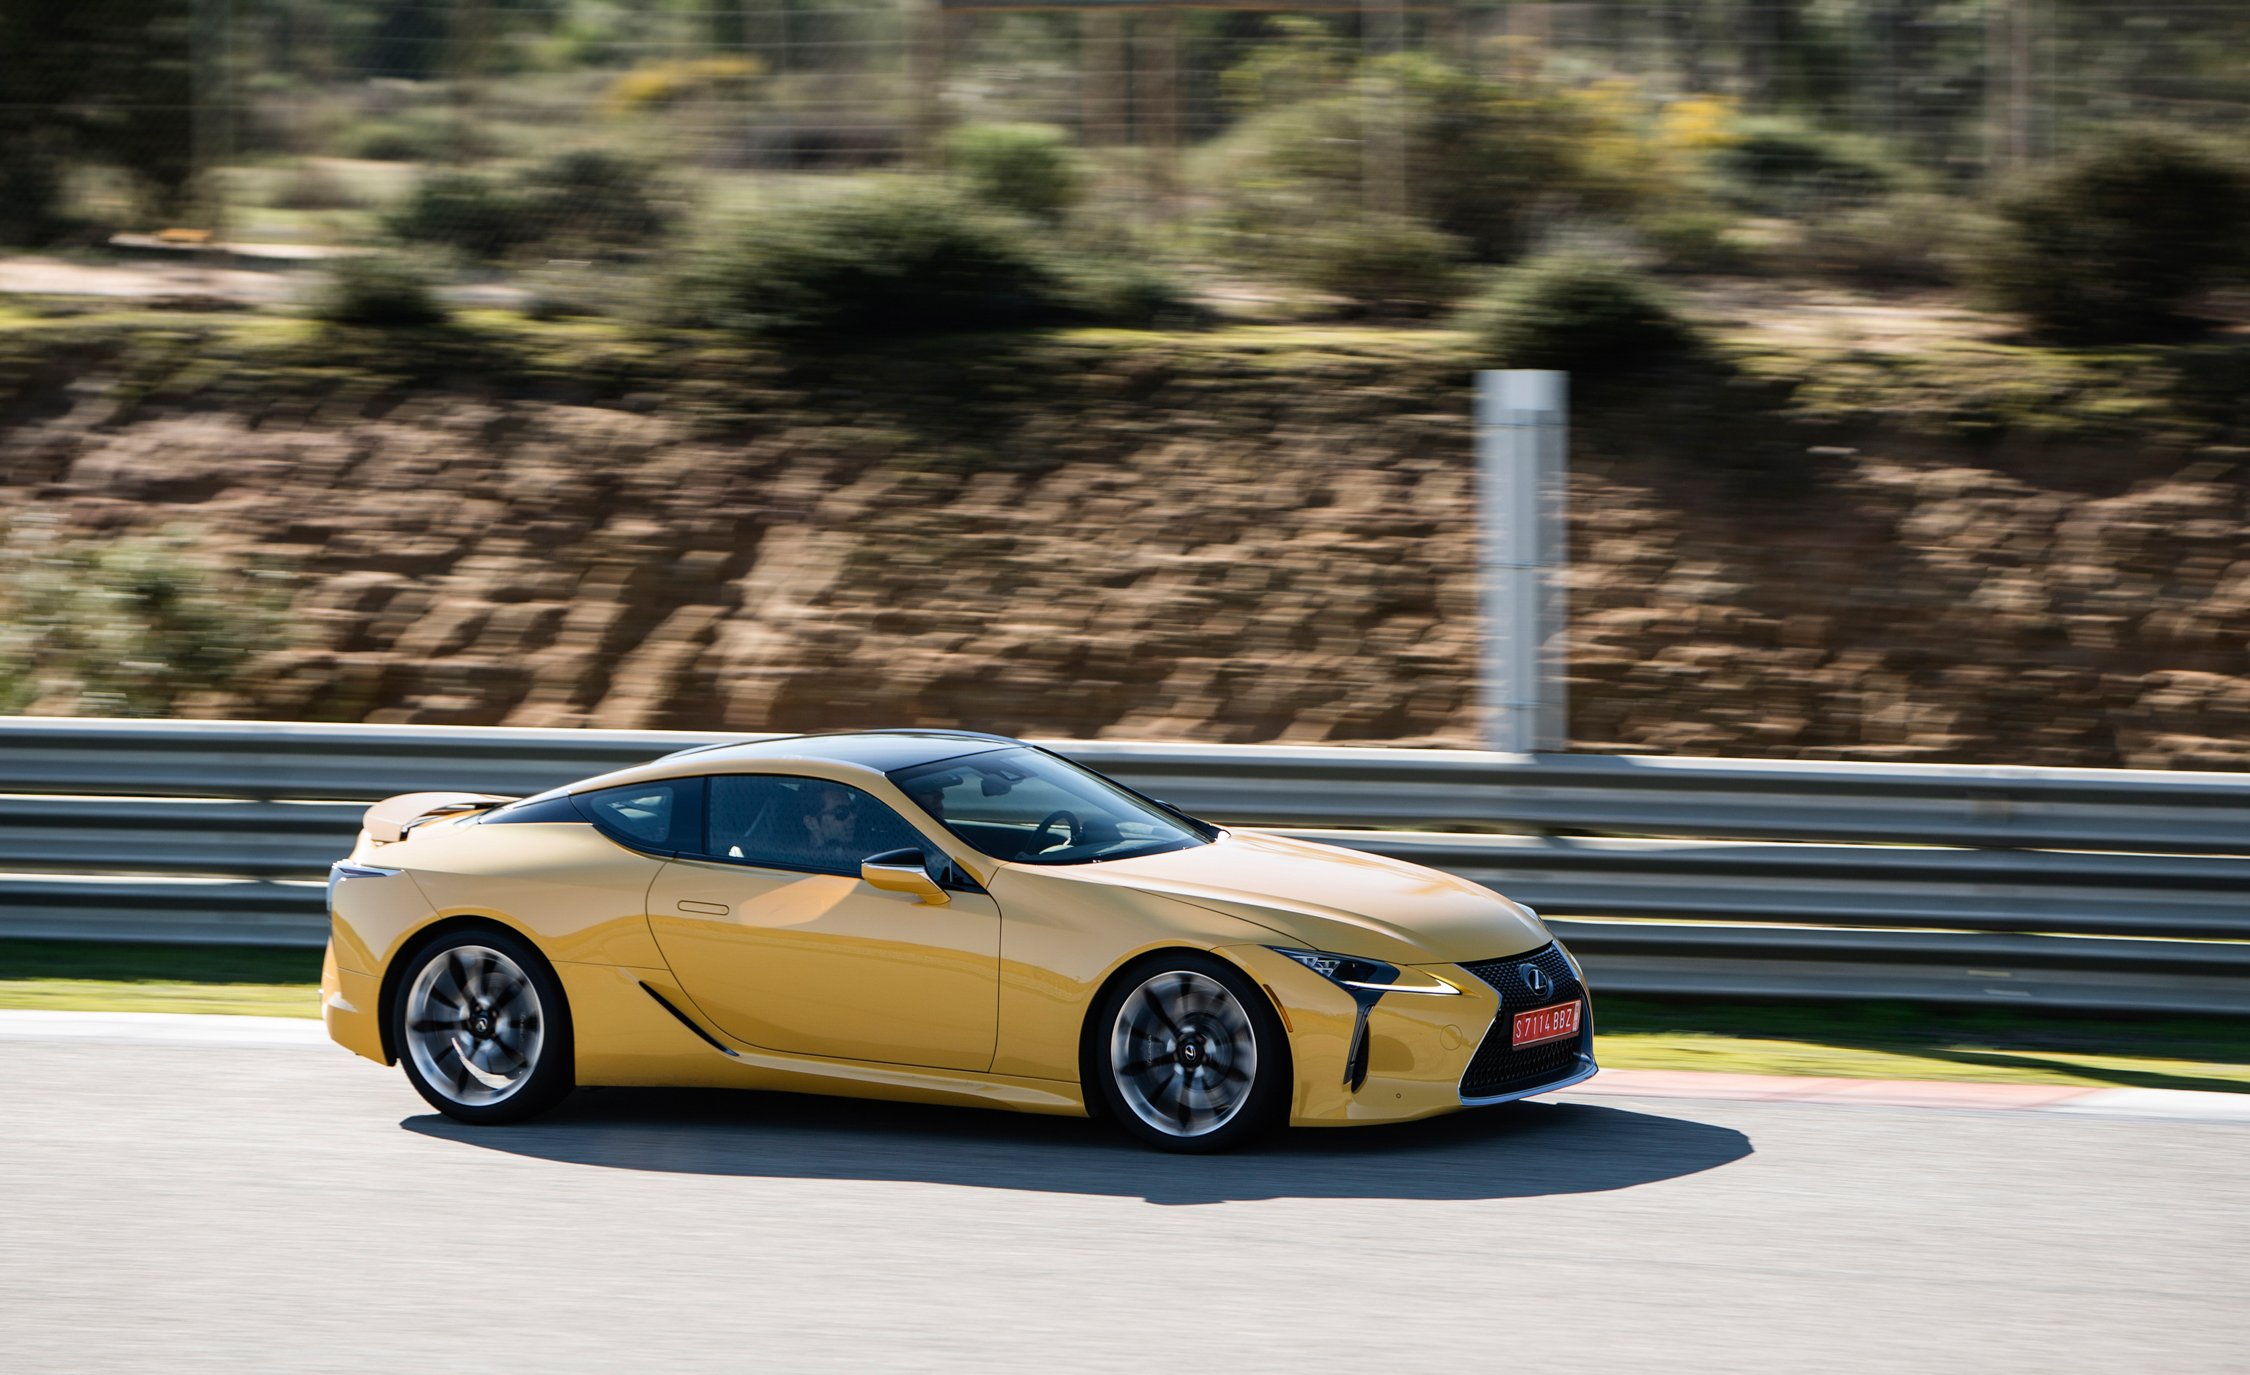 2018 Lexus Lc 500 Yellow Test Drive Front And Side View (Photo 16 of 84)